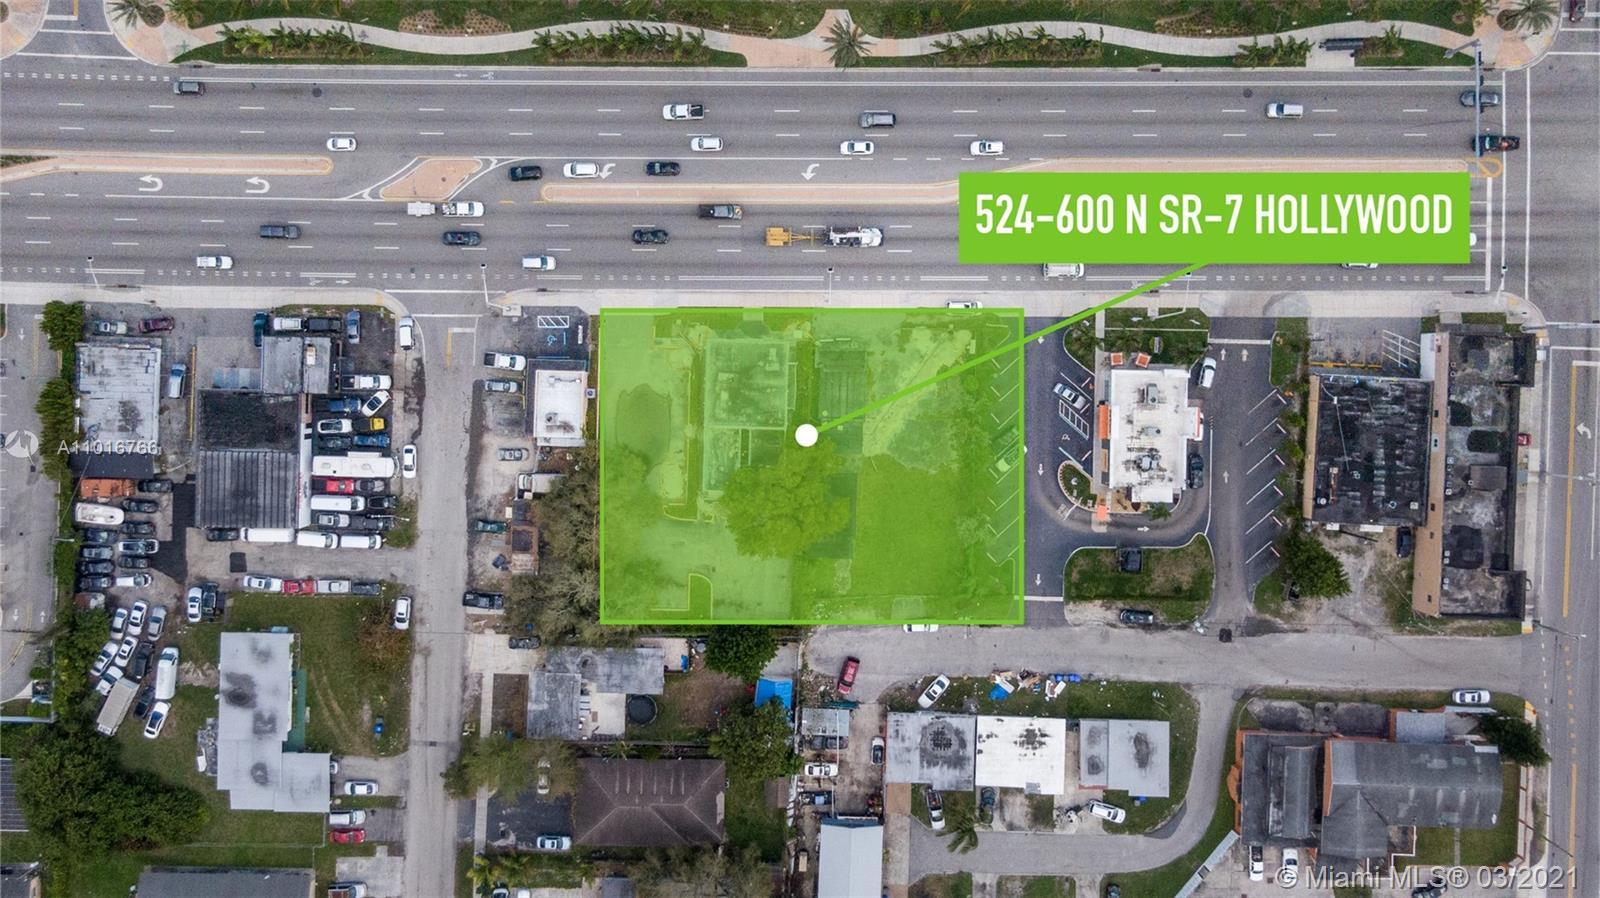 RESF Commercial is pleased to present this great development opportunity directly on 441/SR-7 with T